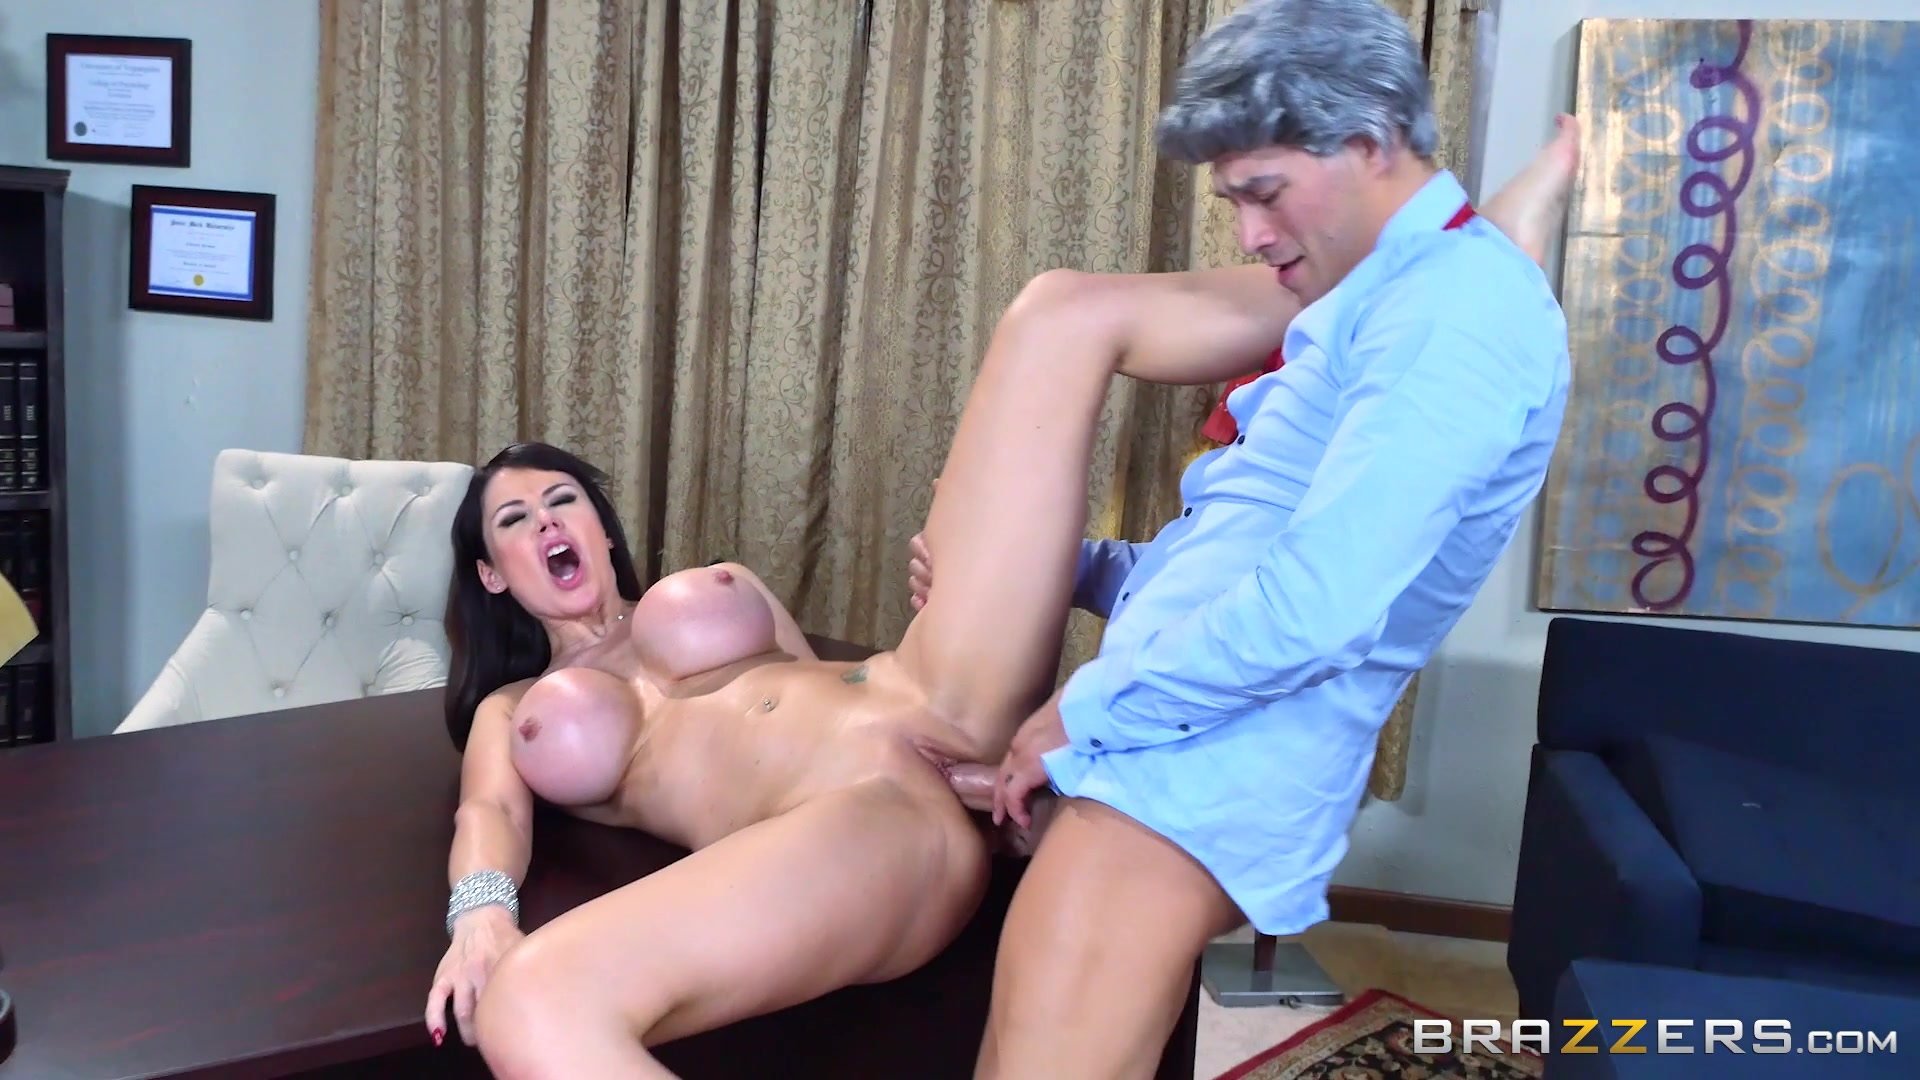 Busty Brunette Eva Karera Gets Her Ass Hammered by a Hung Stud Starring: Eva Karera Length: 30 min